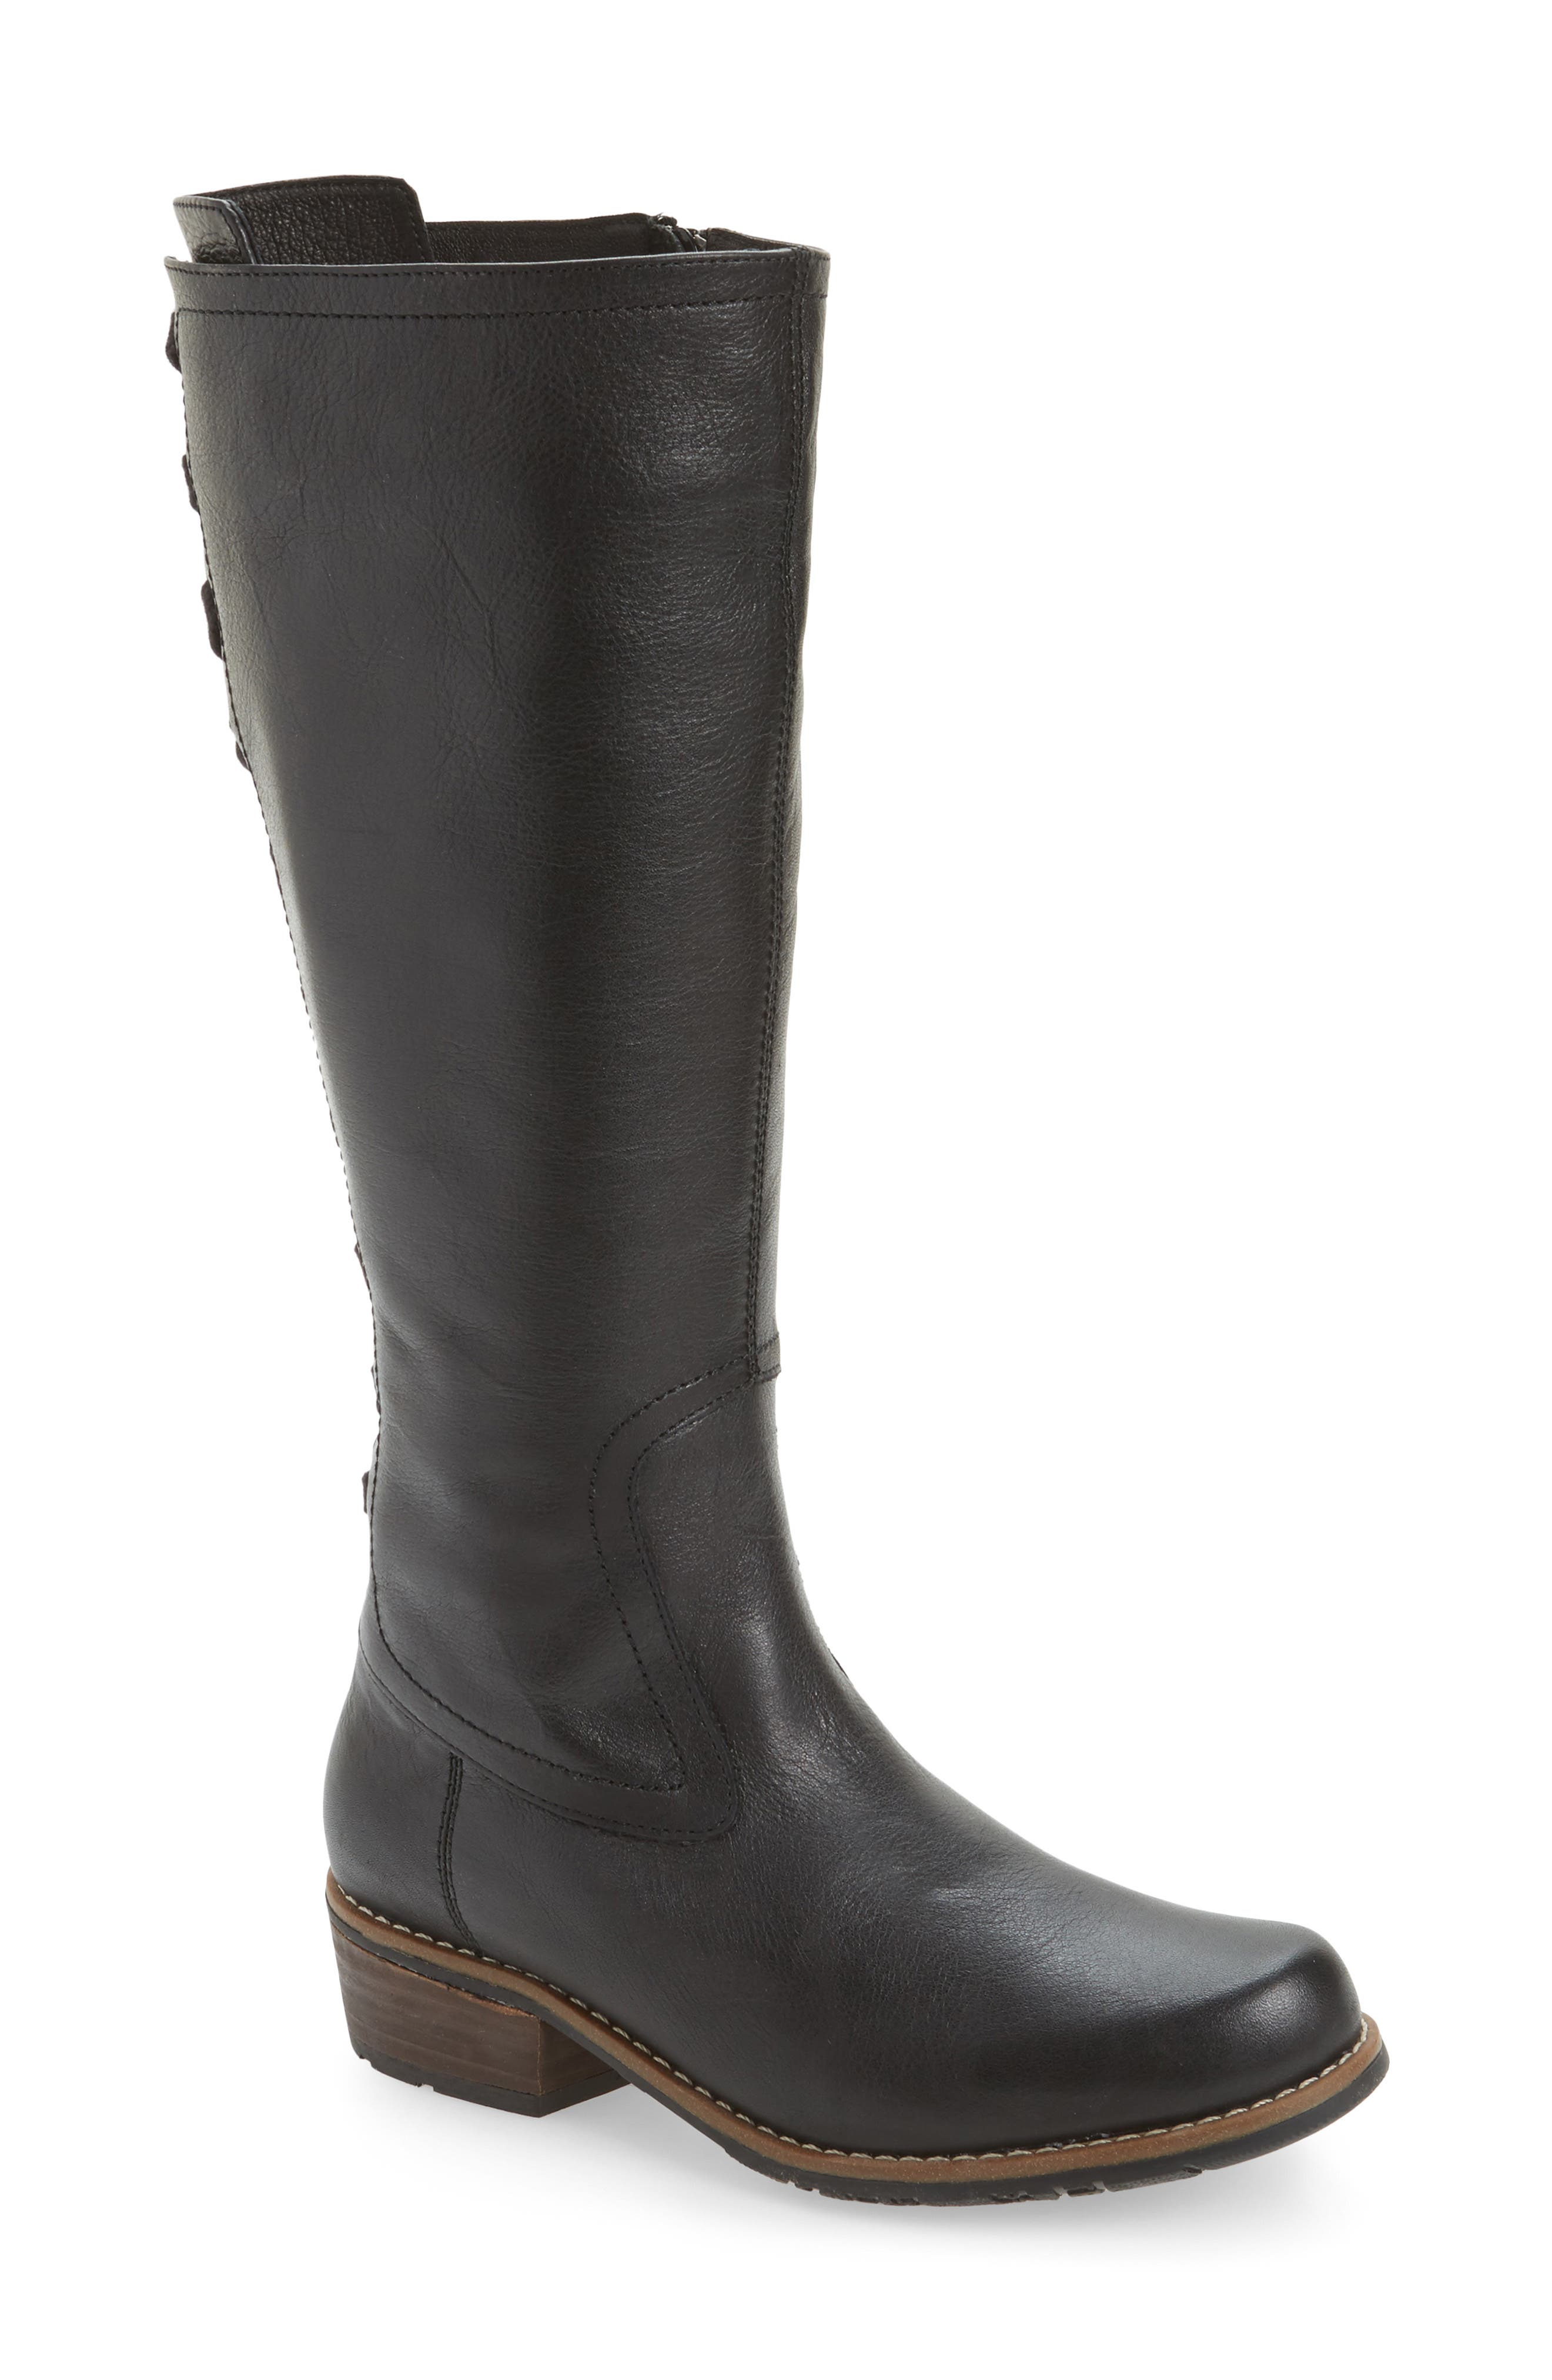 Alternate Image 1 Selected - Wolky Pardo Boot (Women)